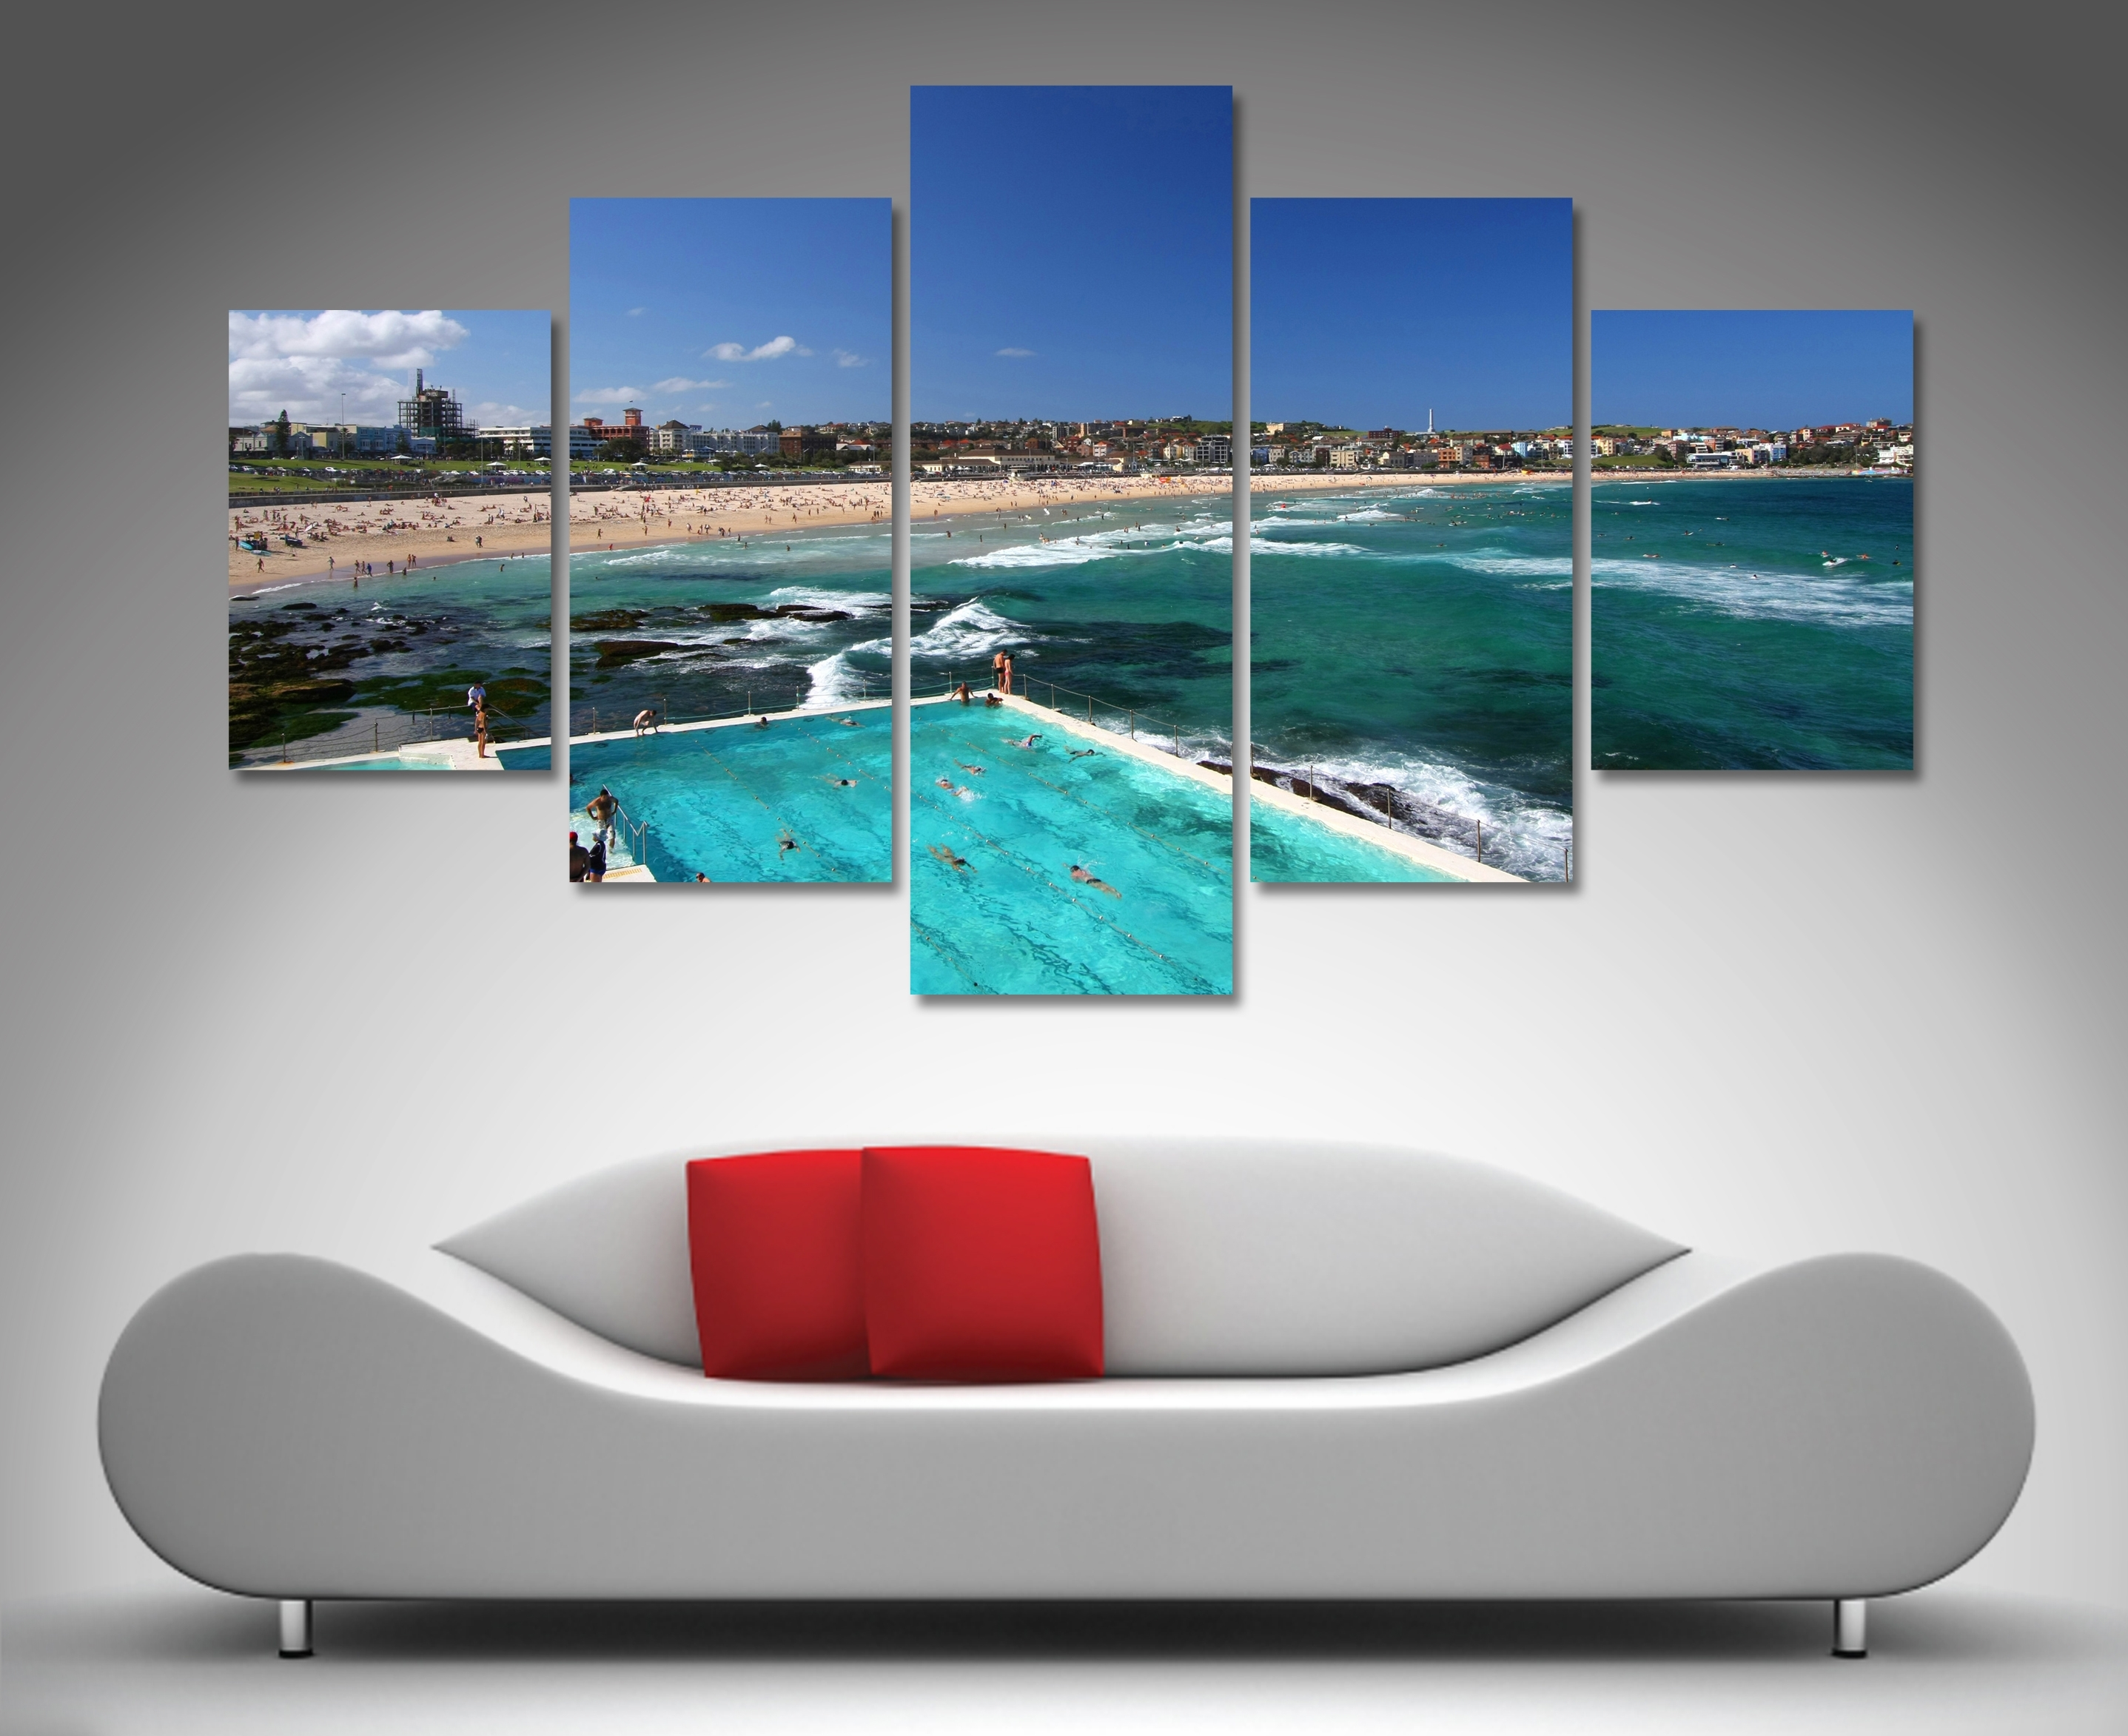 Bondi Beach 5 Panel Wall Art | Canvas Printing Australia Intended For Recent Beach Canvas Wall Art (View 5 of 15)